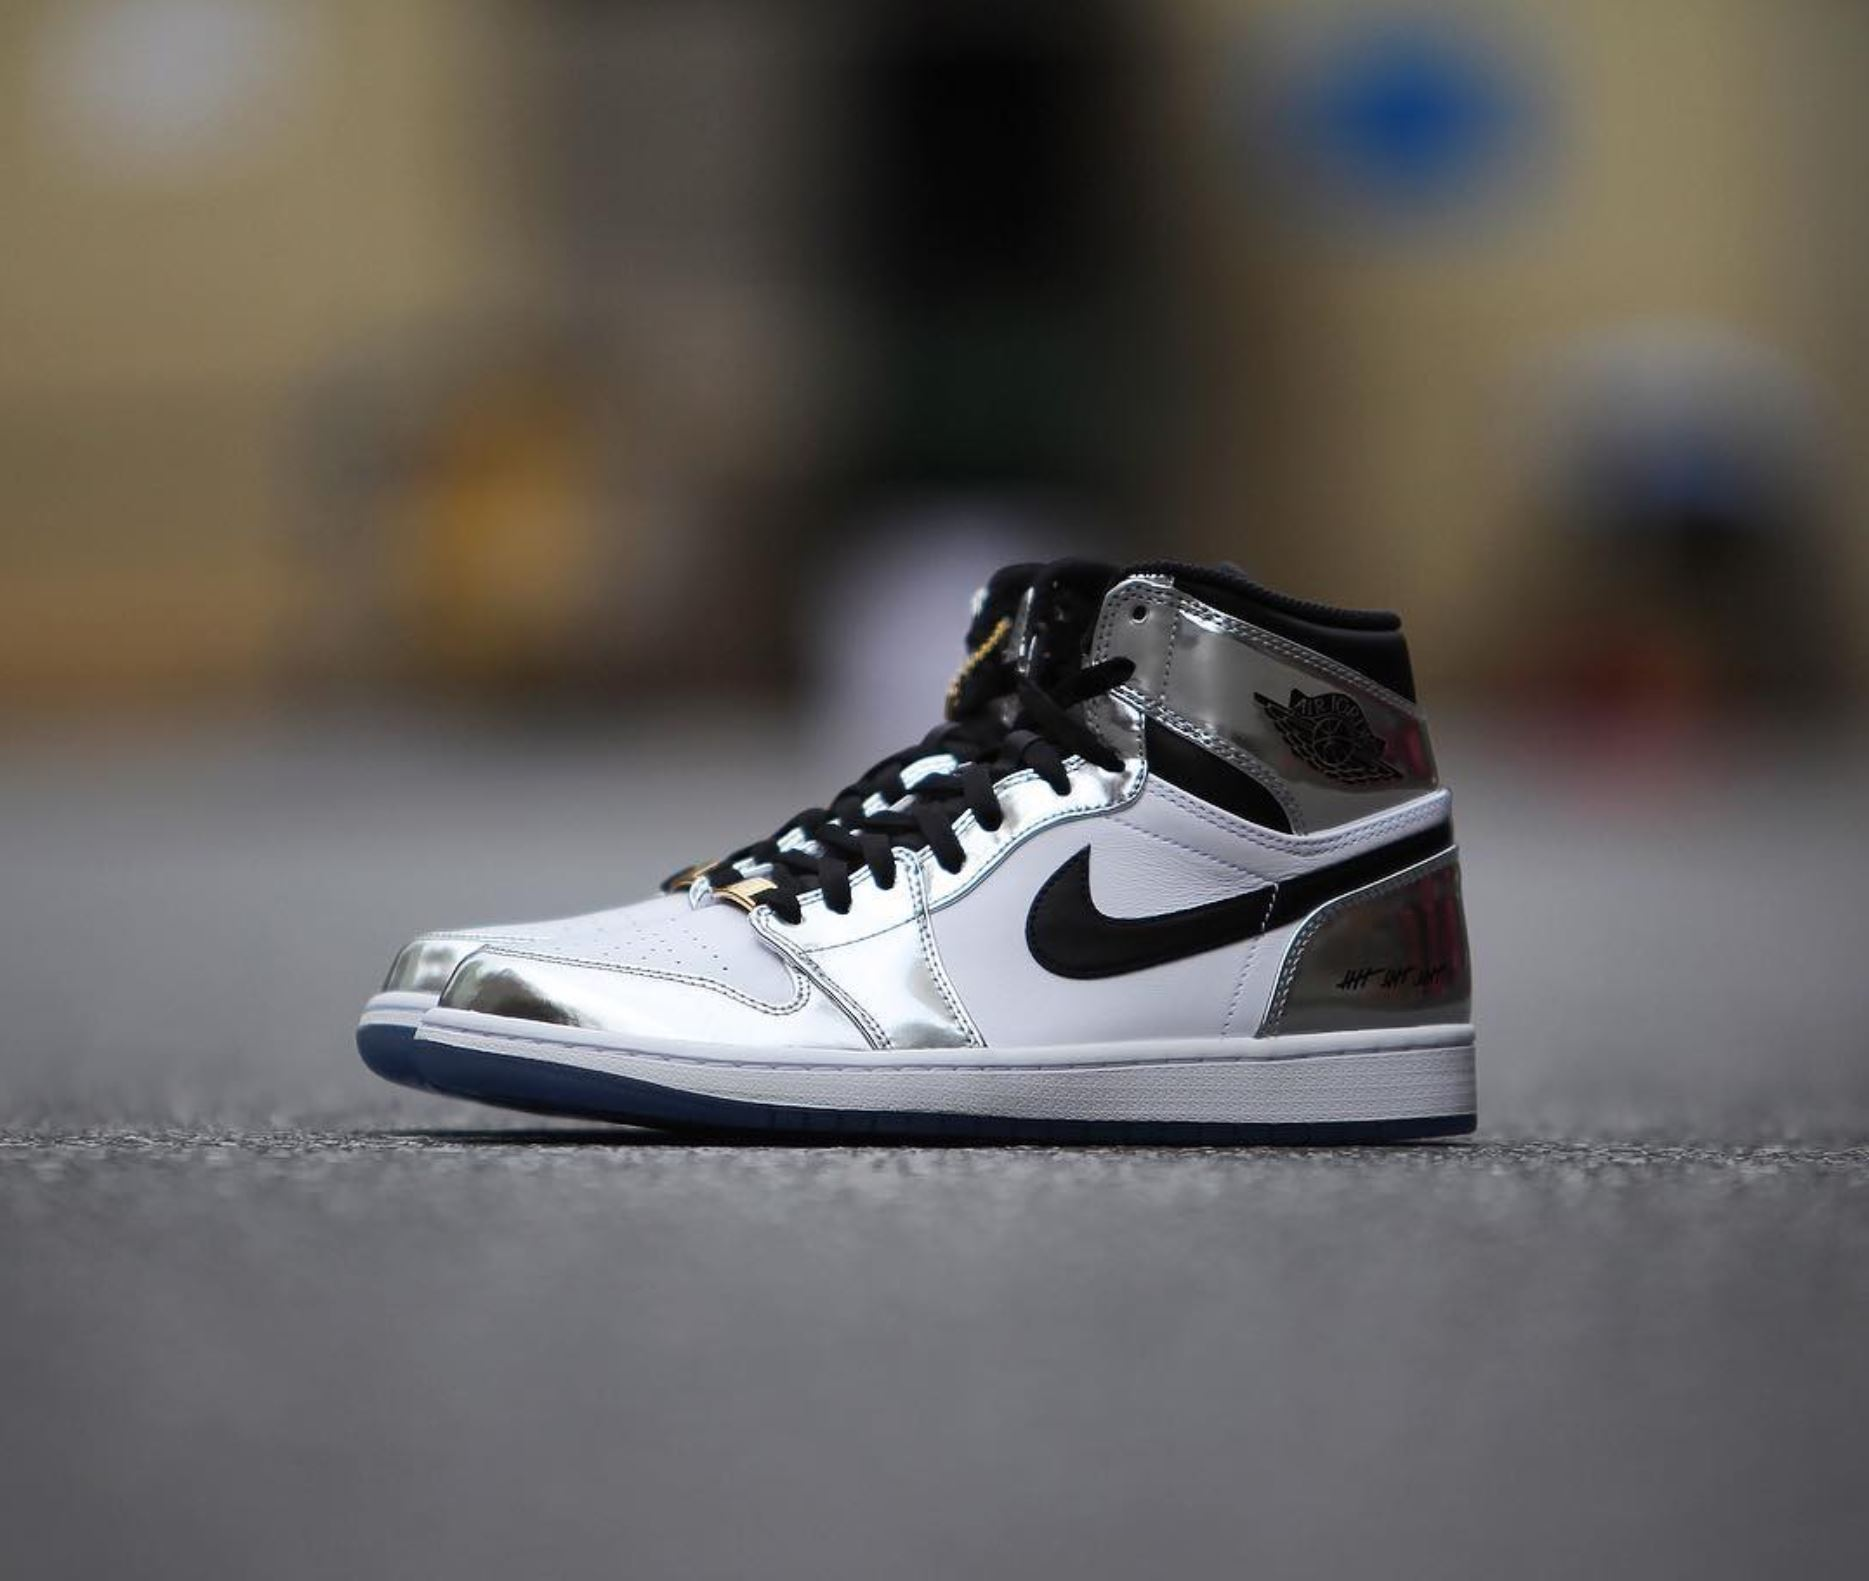 big sale 0d923 6a460 Detailed Look at Kawhi Leonard's Air Jordan 1 'Pass the ...